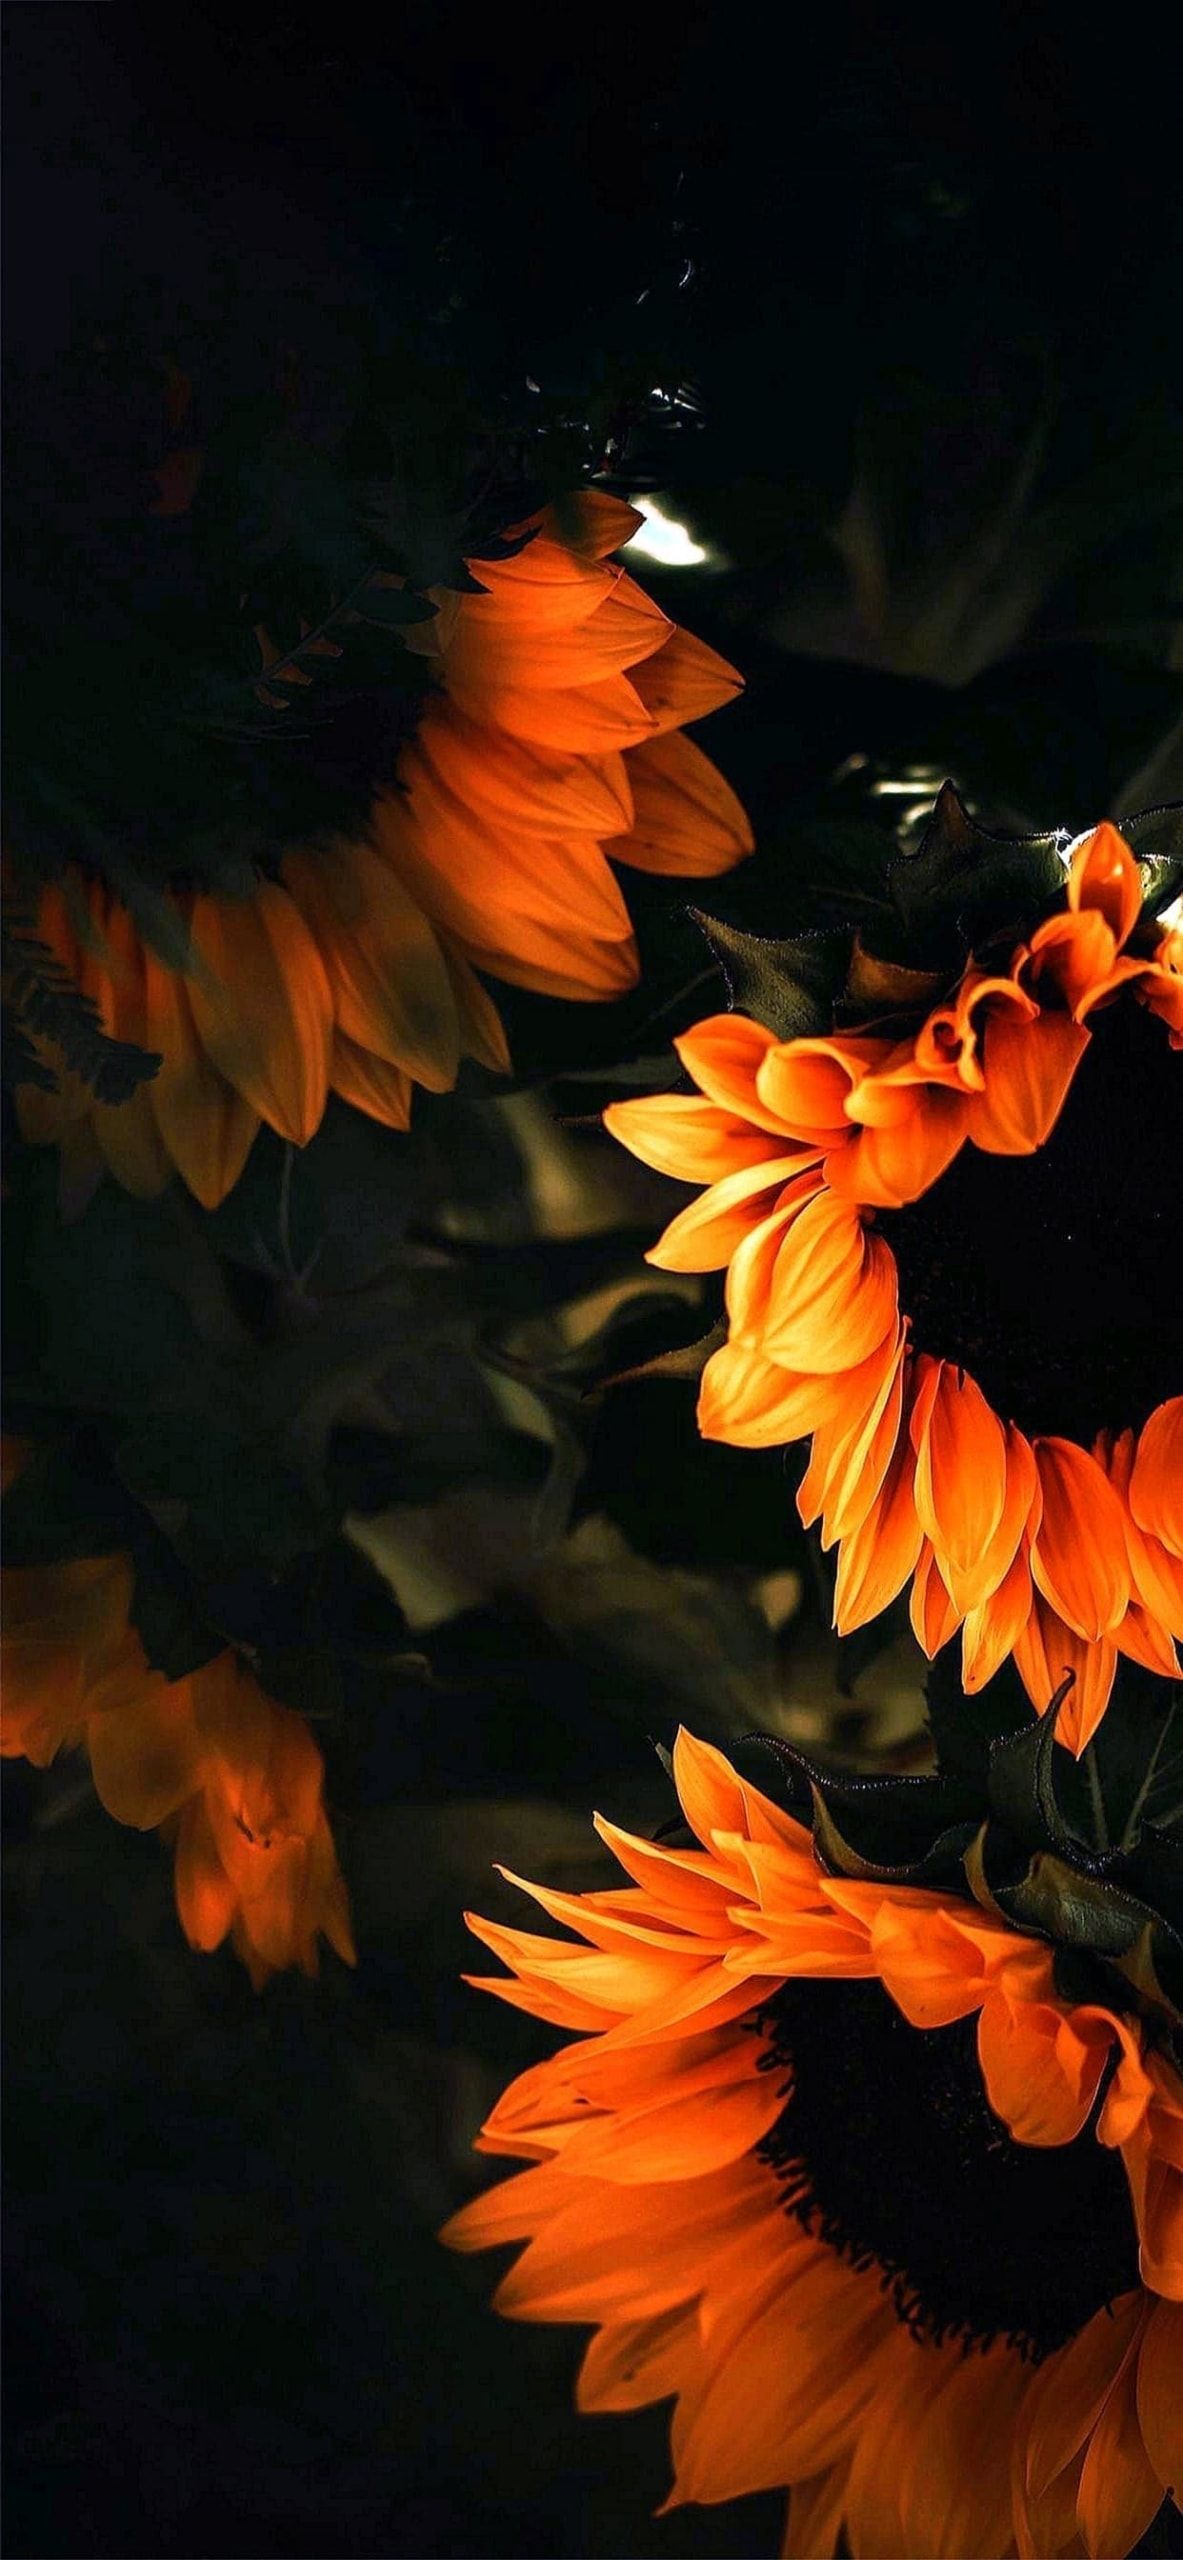 Pin on Sunflower Wallpapers For iPhone Xs Max